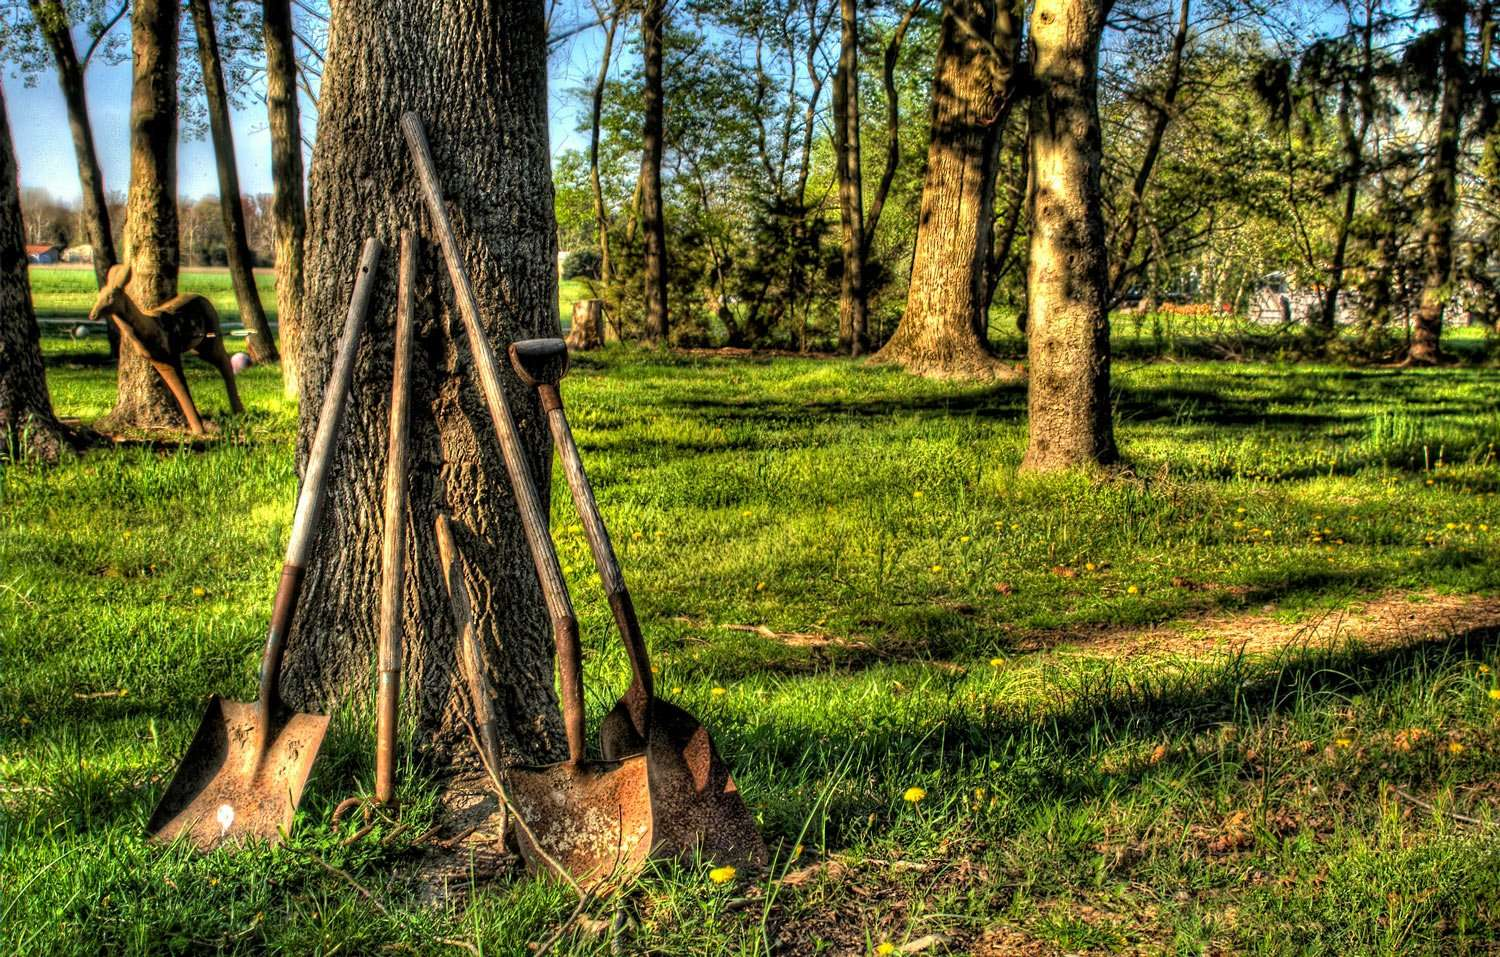 shovels propped against a tree in the forest